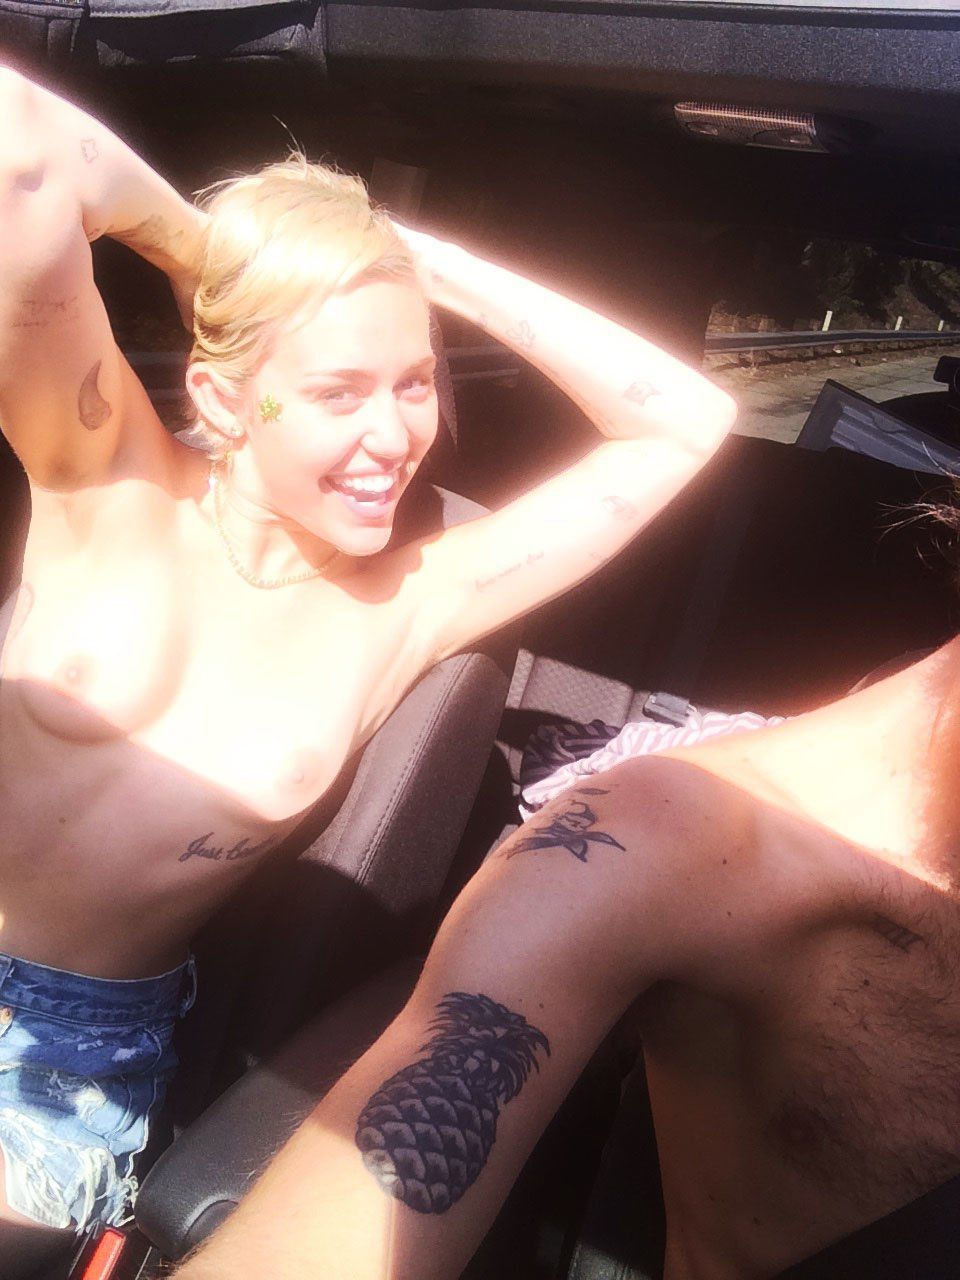 Miey cyrus upskirt picture